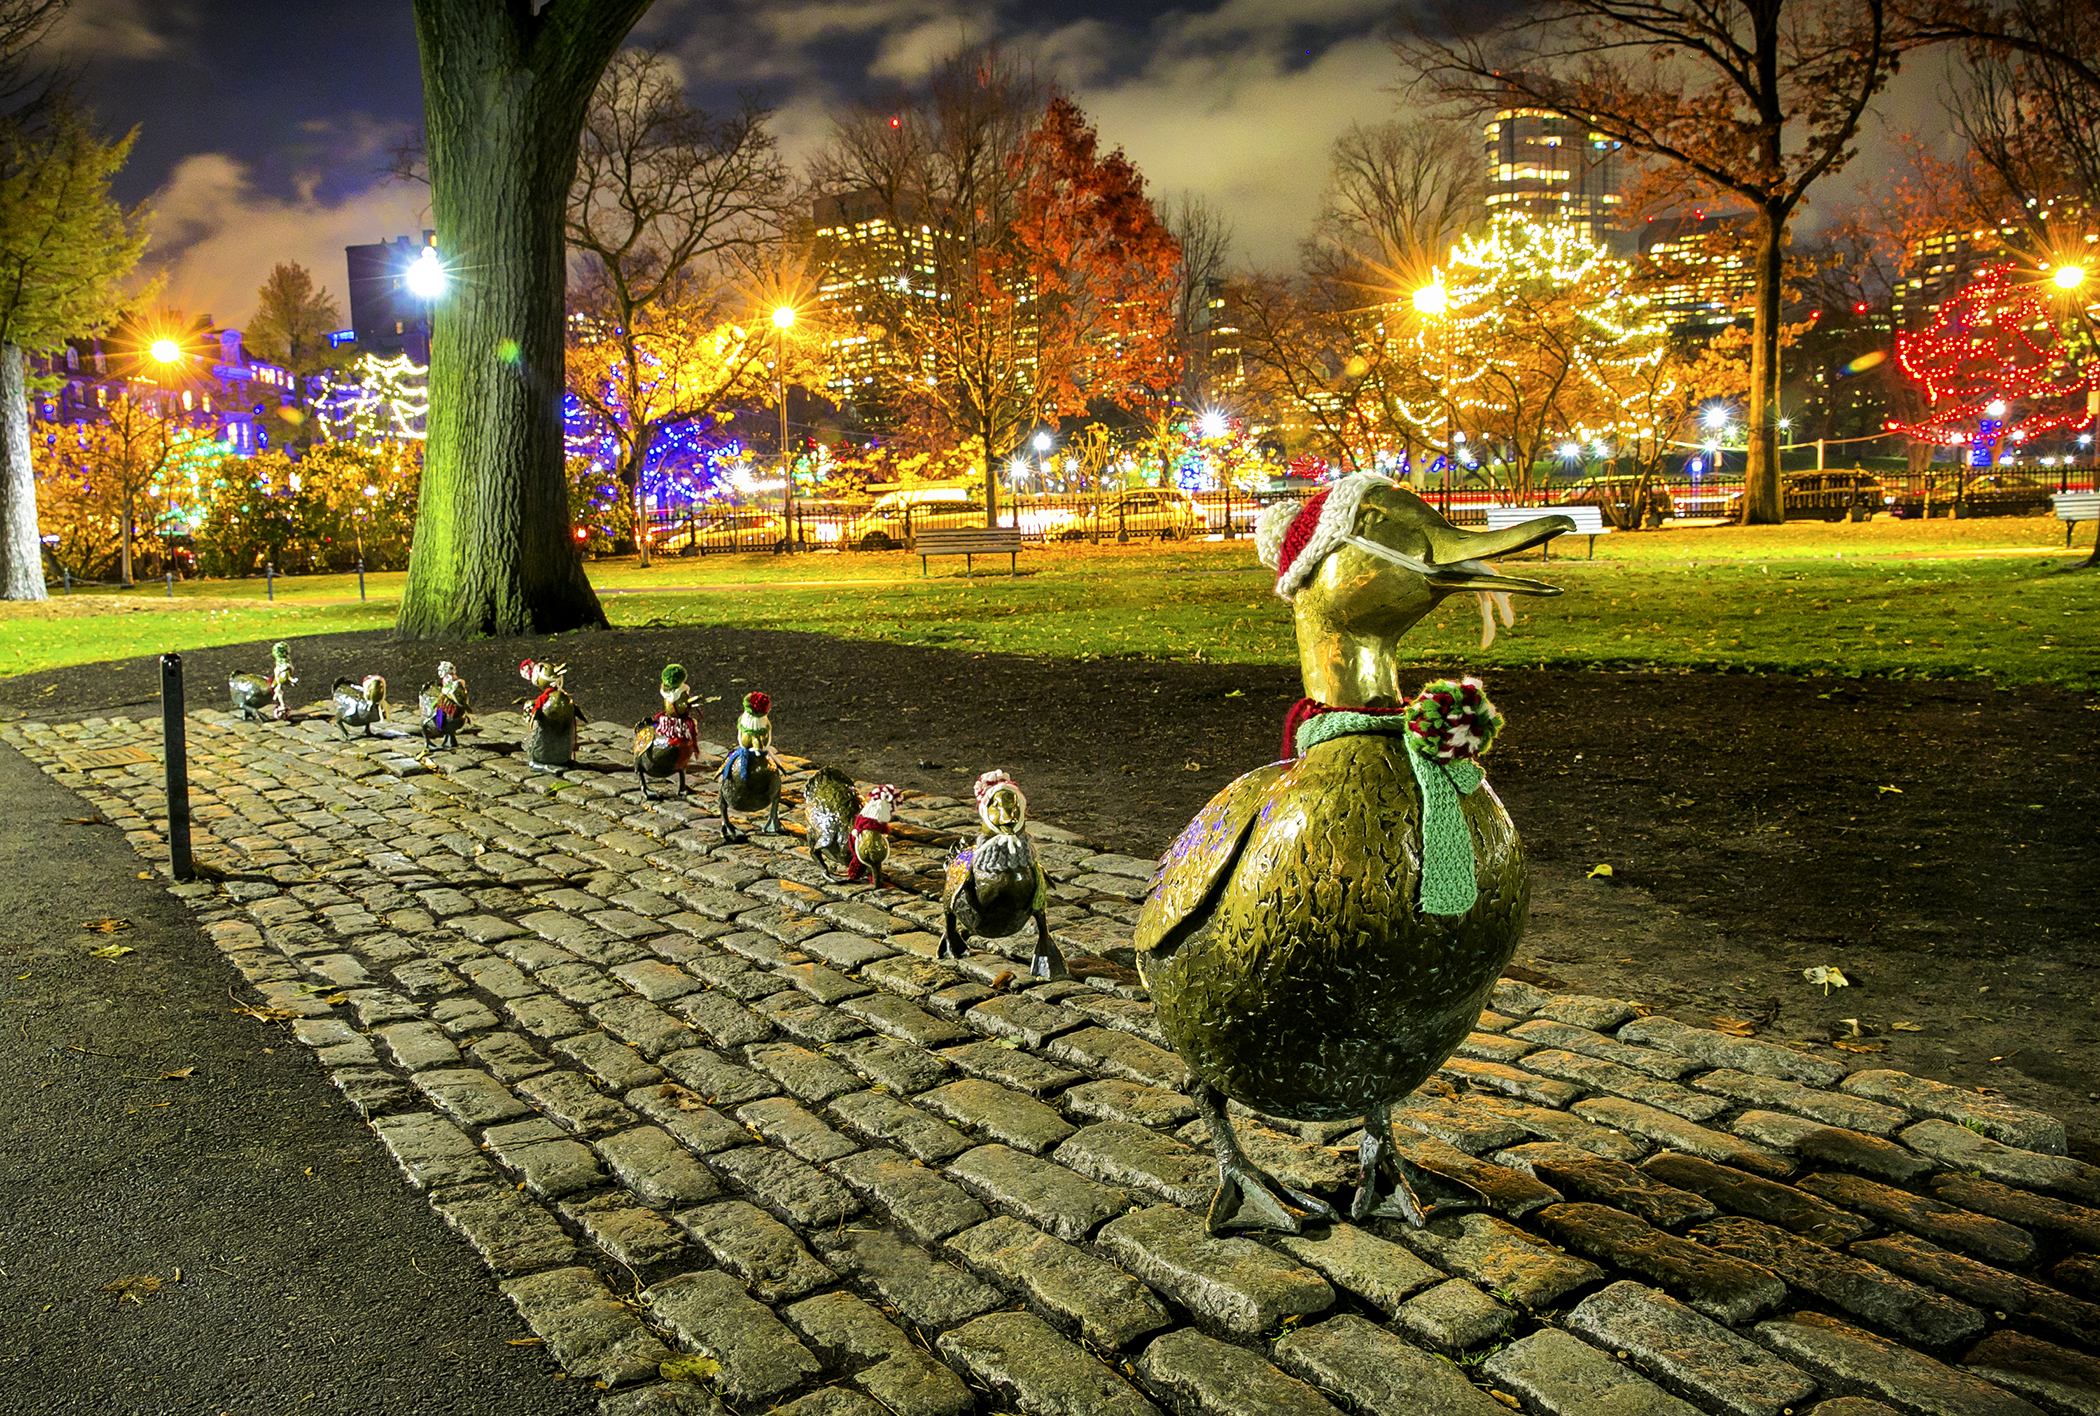 Boston Christmas 2019 Boston's Holiday Season | Christmas and NYE Events